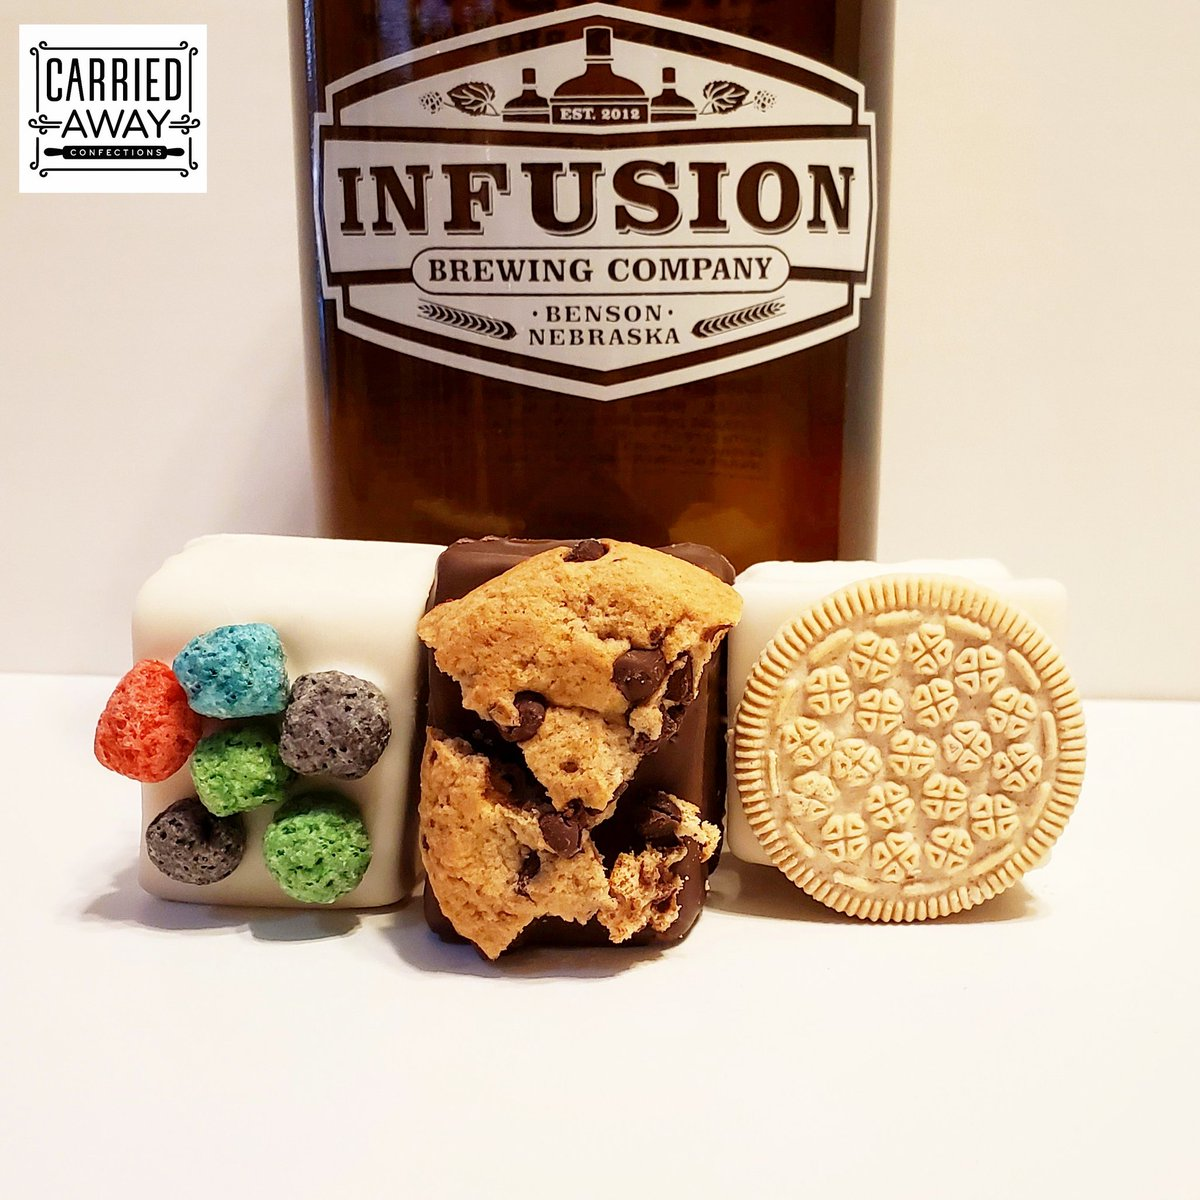 Now @InfusionBrewing #craftbeer infused #Chocolate Dipped #Marshmallows feat Vanilla Bean Blonde. #Beer infused marshmallows dipped in #whitechocolate w/ @RealCapnCrunch Crunch Berries, #chocolatechipcookies, & Golden @Oreo on top. #Omaha #Nebraska #LittleBohemia #Benson #Exit442